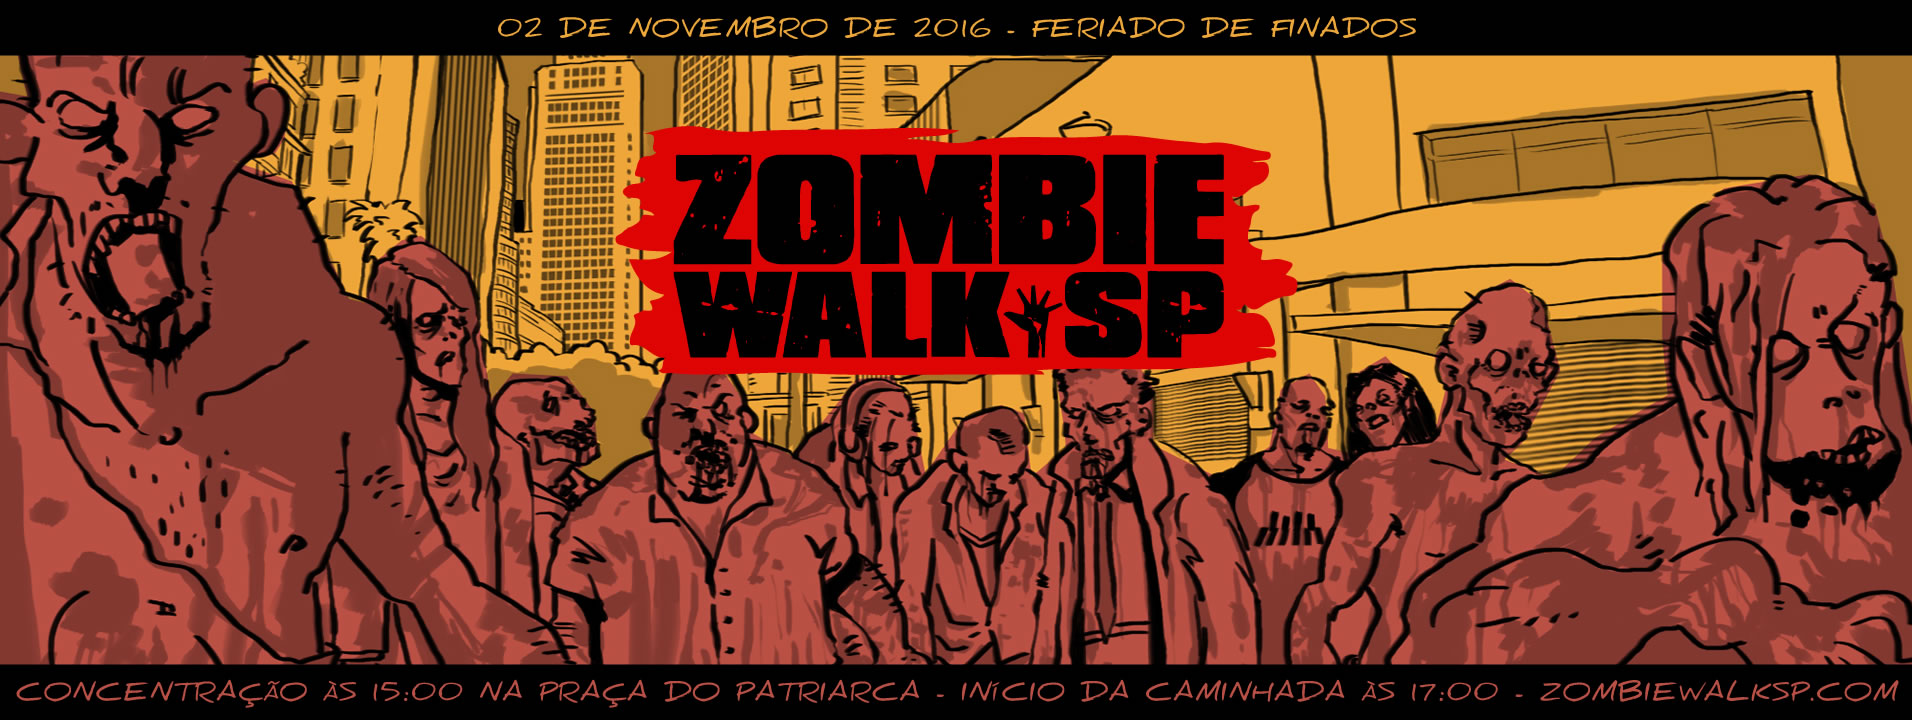 Zombie Walk SP - Flyer 2016